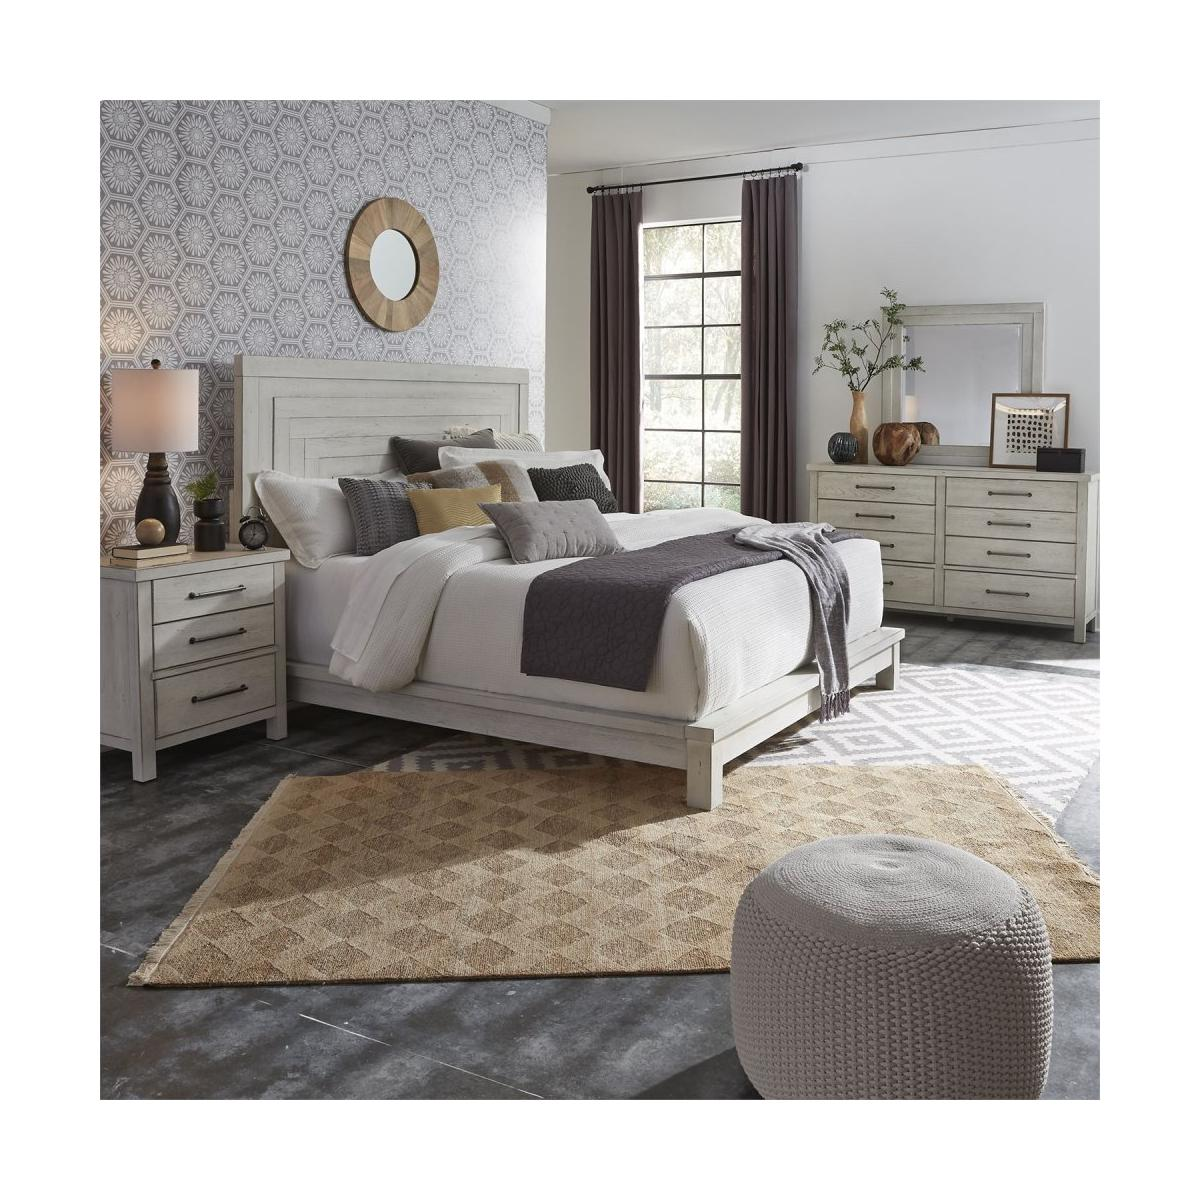 King California Platform Bed, Dresser & Mirror, Night Stand